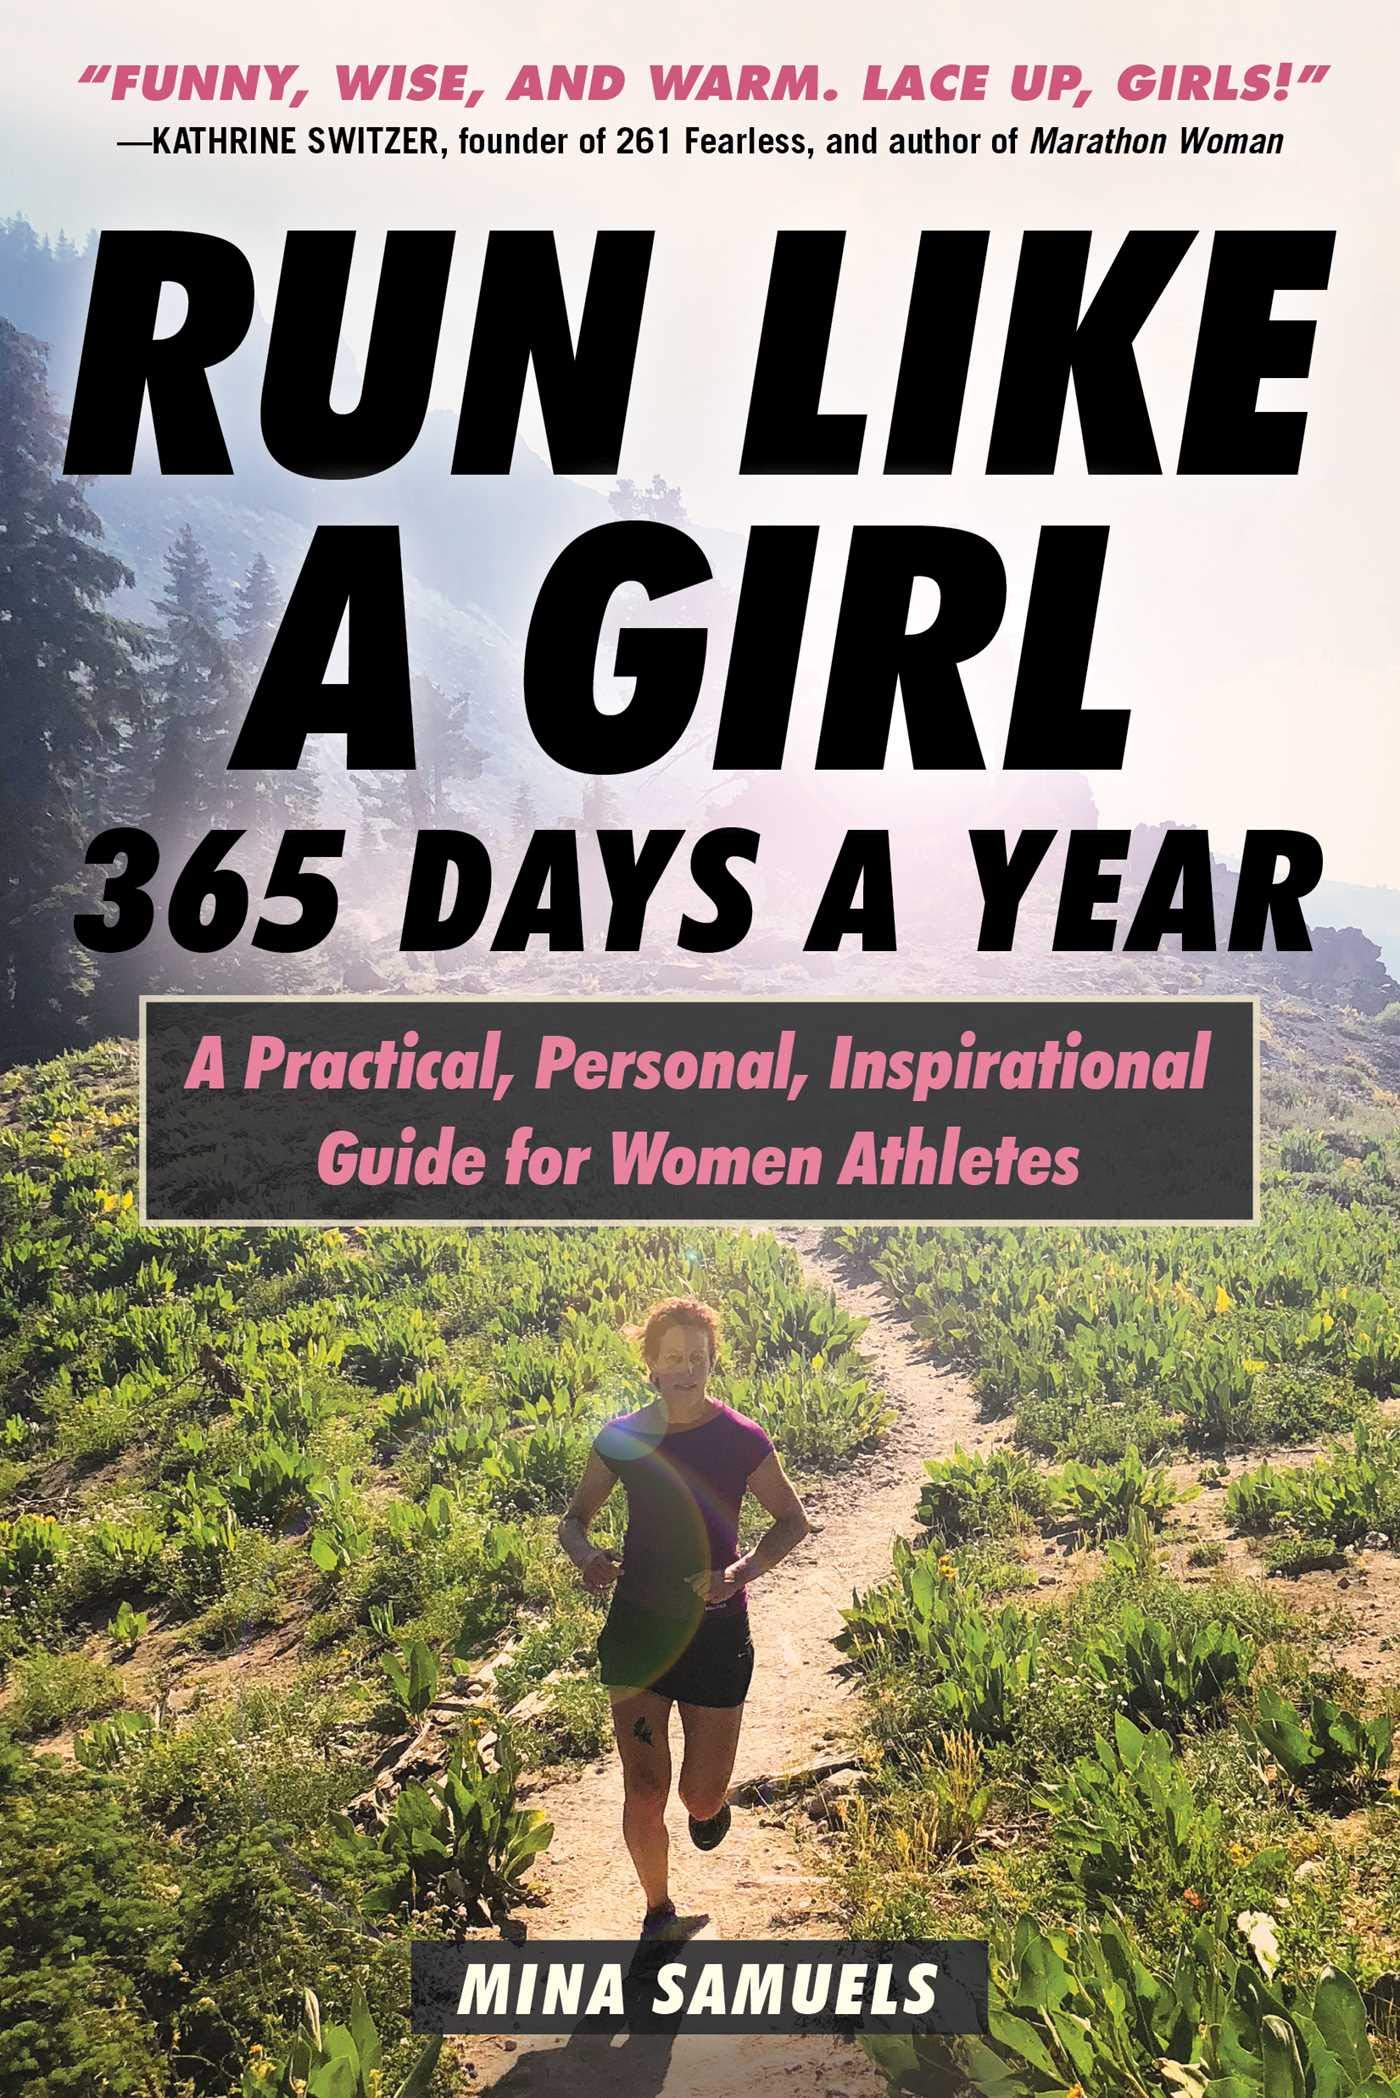 Run Like a Girl 365 Days a Year: A Practical, Personal, Inspirational Guide for Women Athletes by Skyhorse